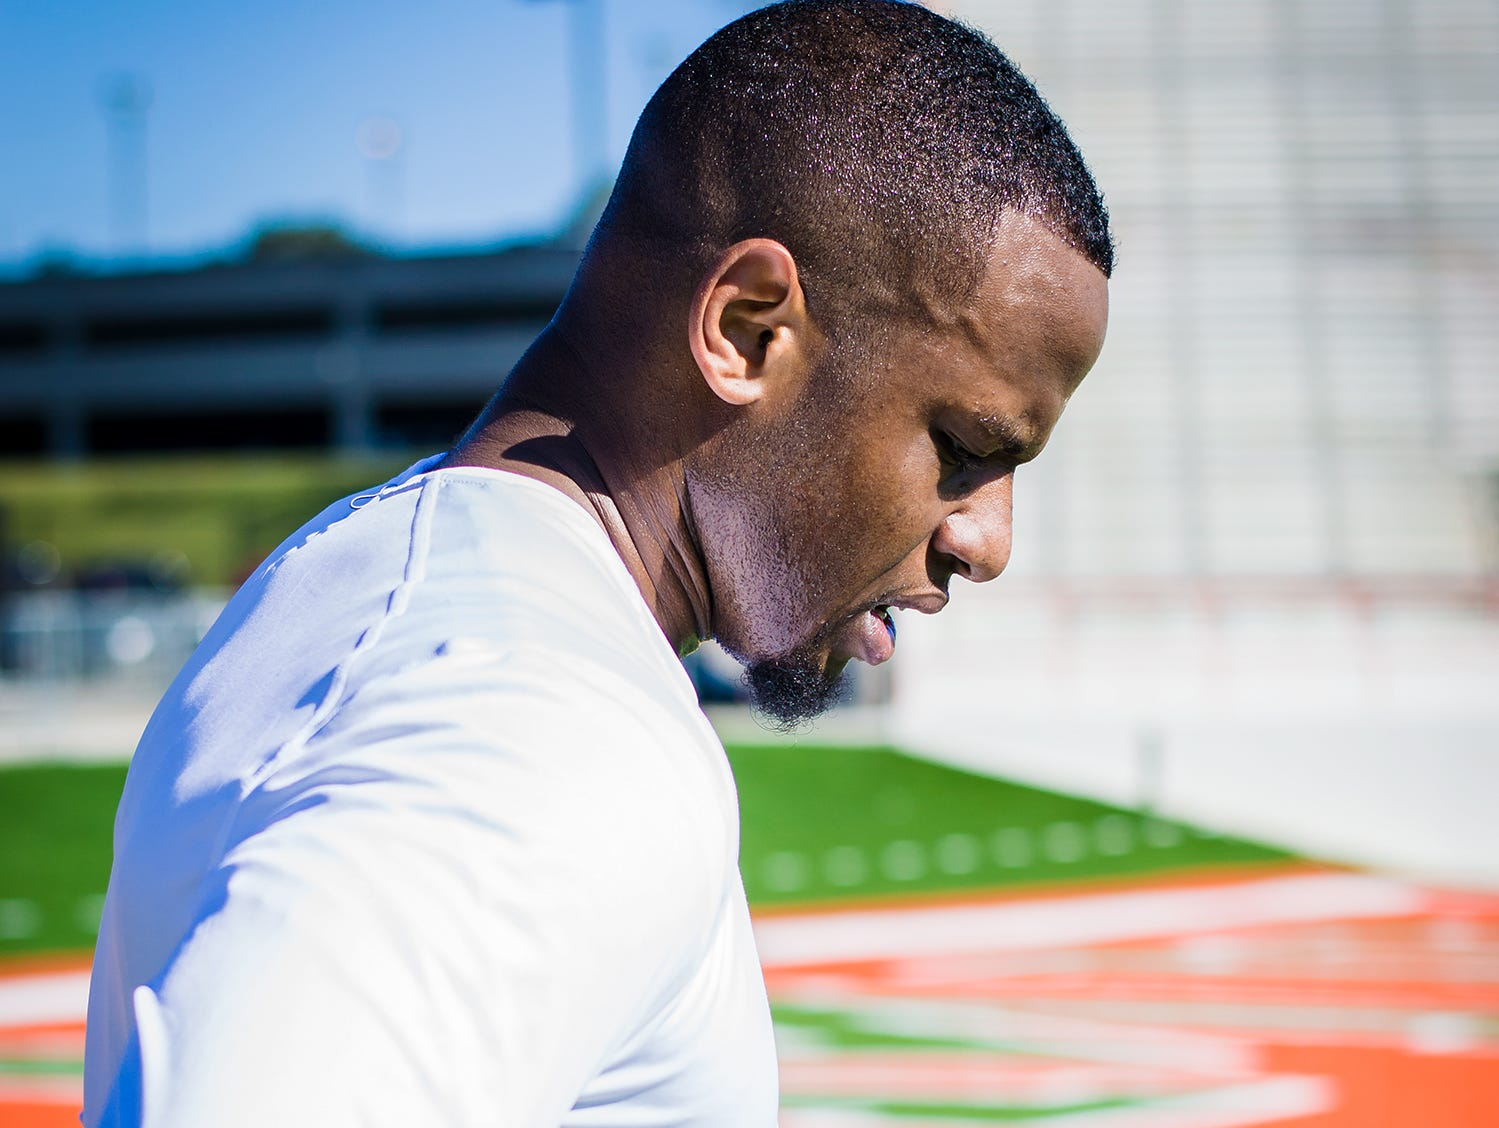 Akil Blount pauses for a breather between workouts at Bragg Memorial Stadium.